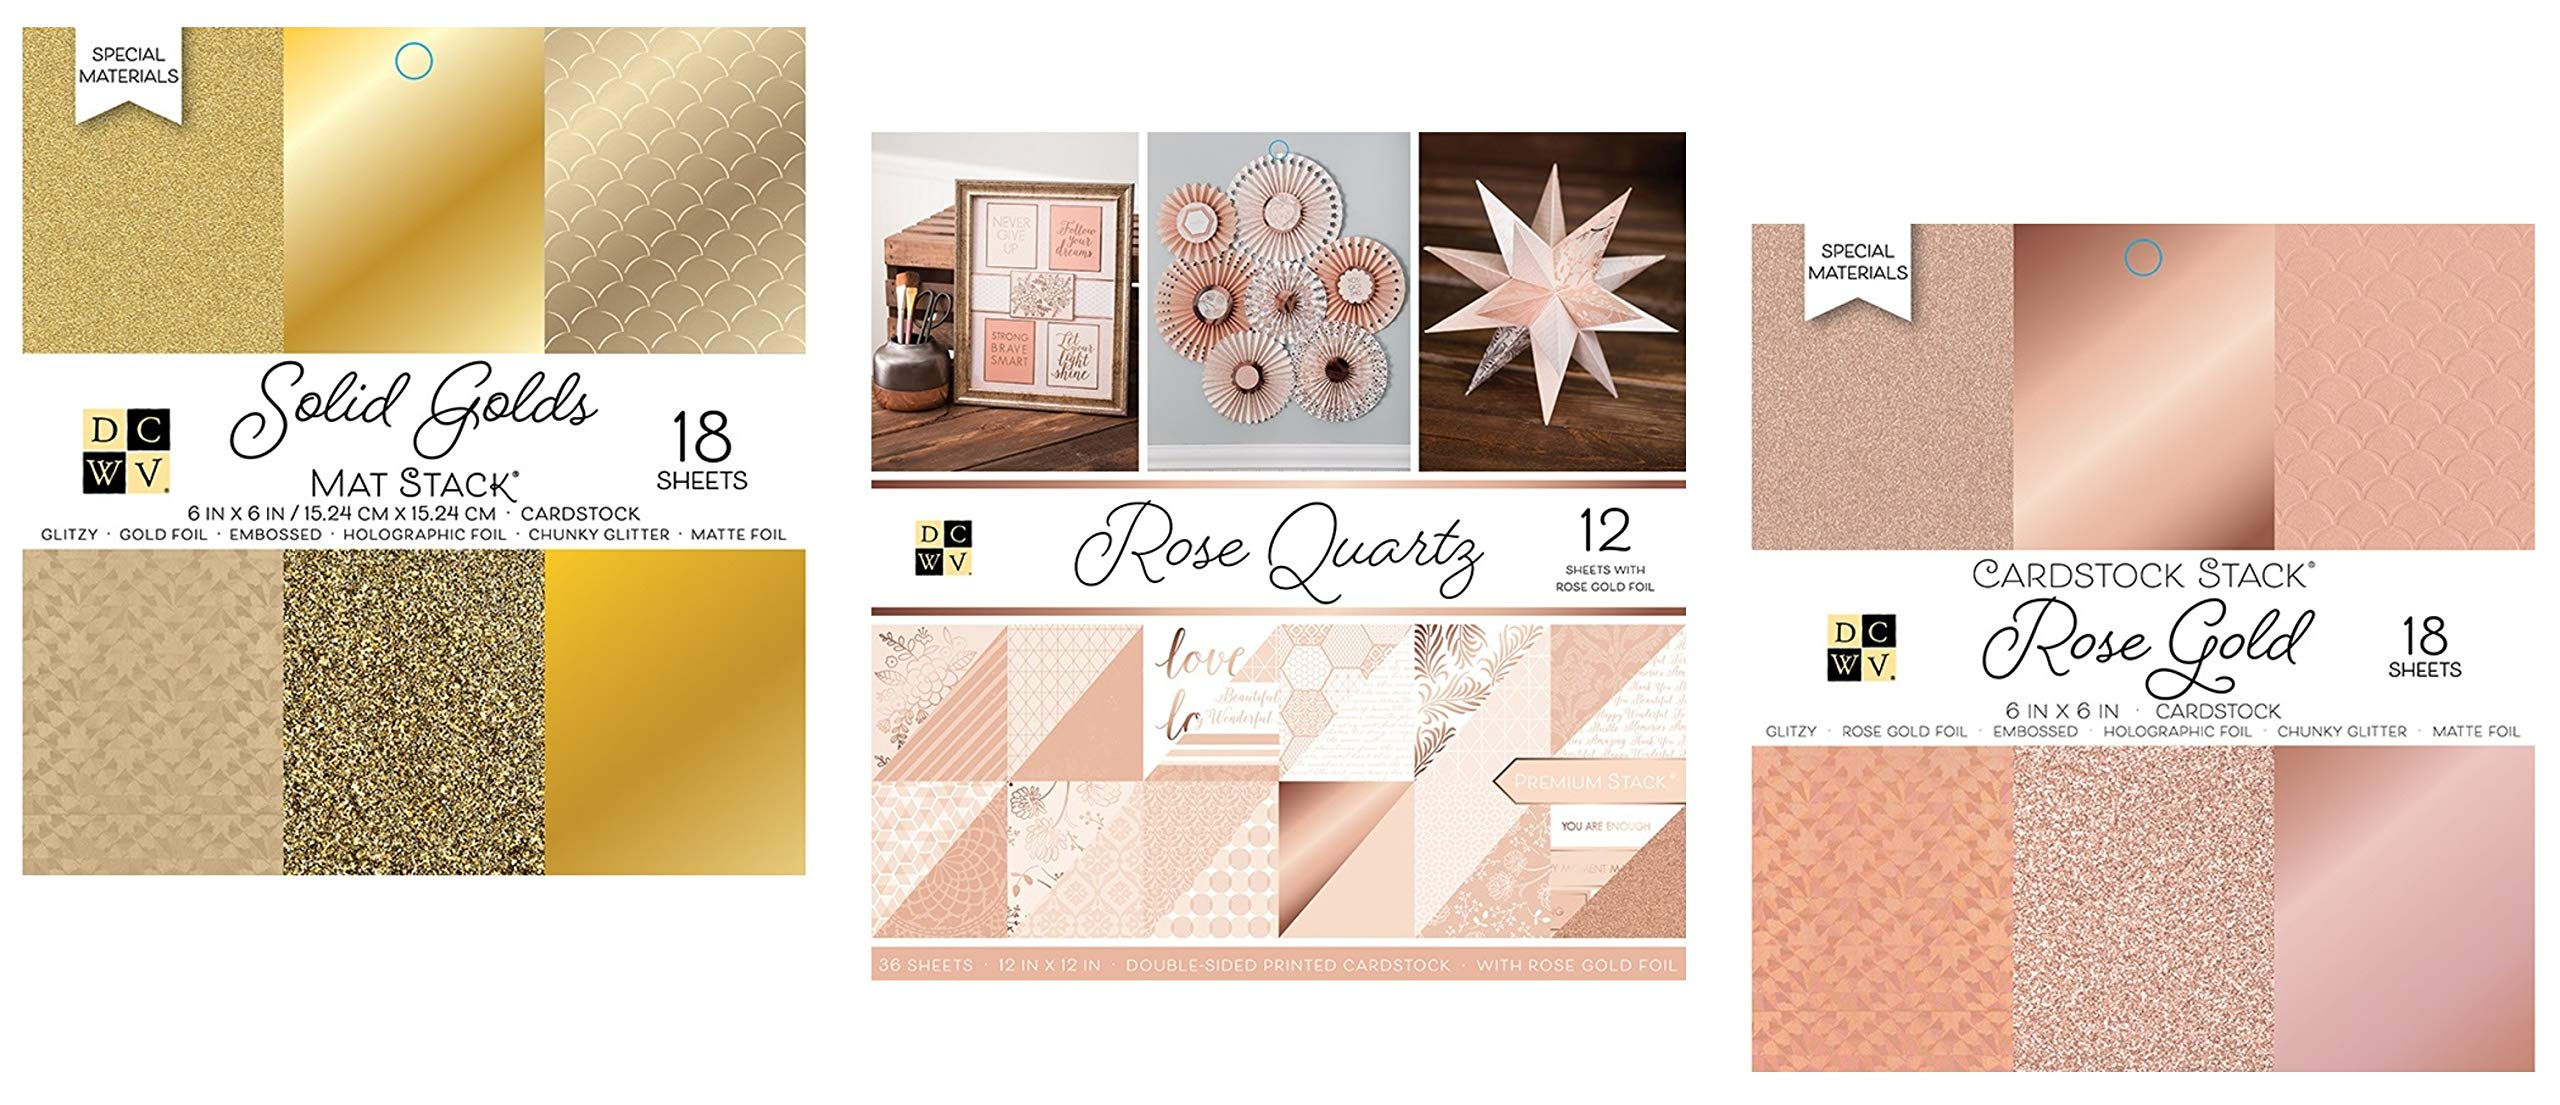 72 Sheets Mix of 6x6 and 12x12 Inch Rose Gold and Gold Cardstock Paper | Metallic, Glitter, White, Shimmer, Matte | Heavy Card Stock for Scrapbook, Origami, Cards, Invitations | 3 Stacks Set by DCWV by Generic